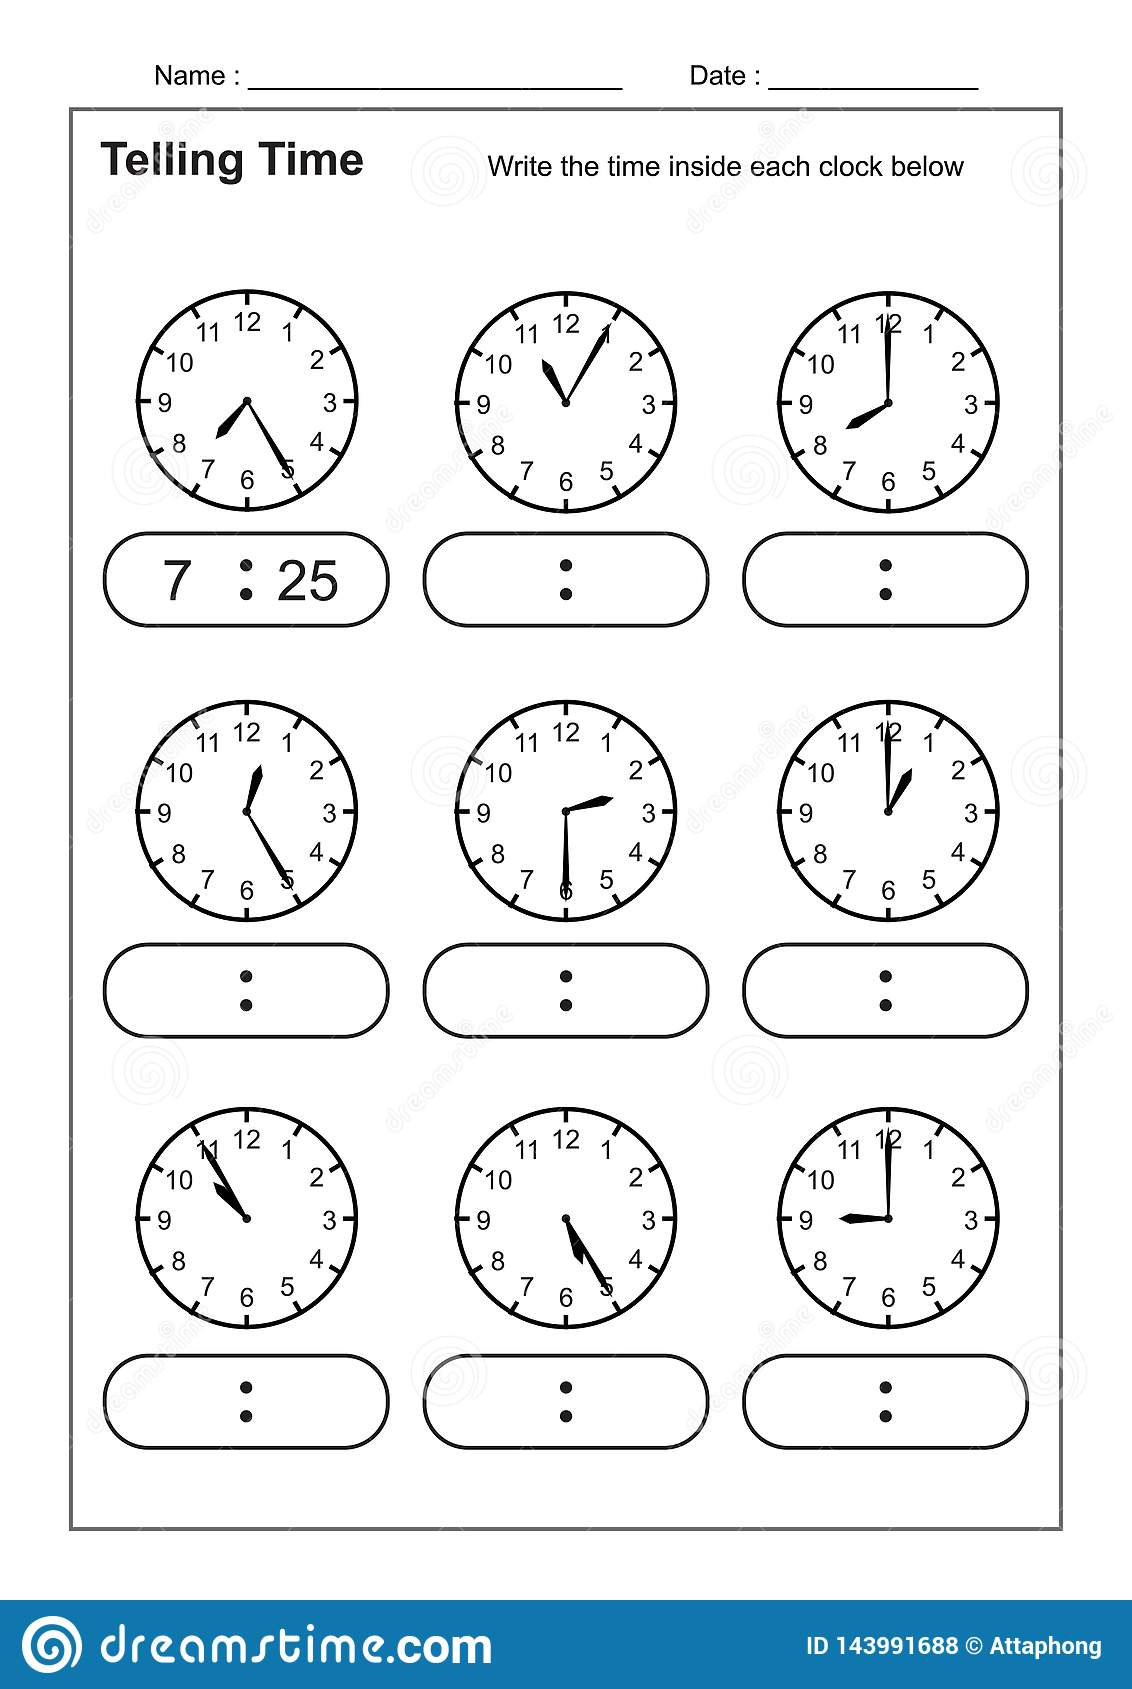 hight resolution of Telling Time Telling The Time Practice For Children Time Worksheets For  Learning To Tell Time Game Time Worksheets Stock Vector - Illustration of  game